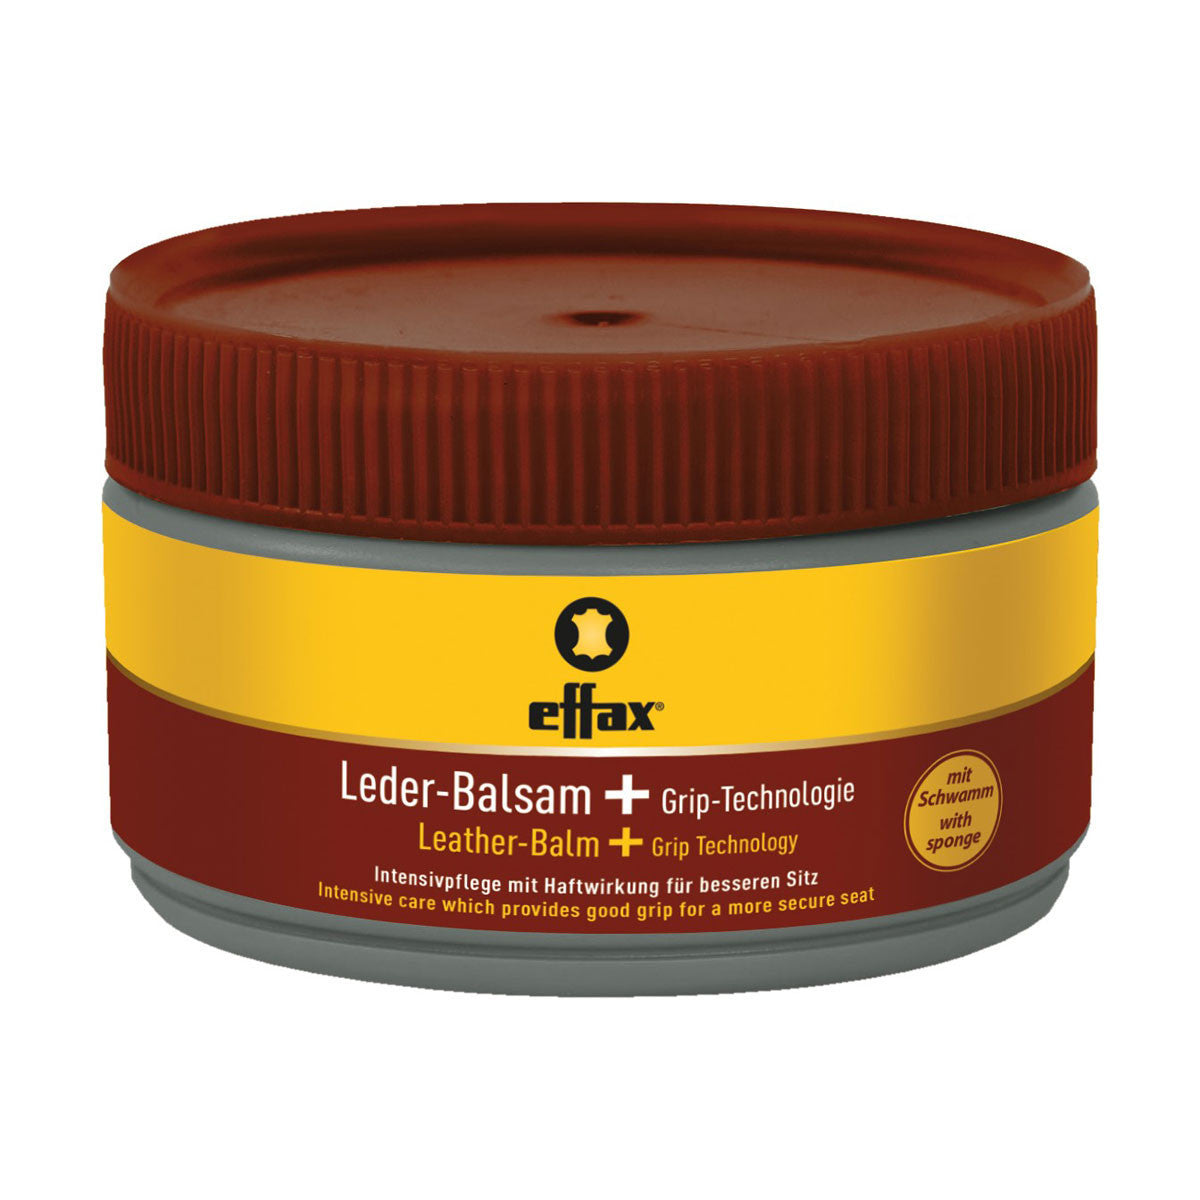 Effax Leather Balm & Grip Technology